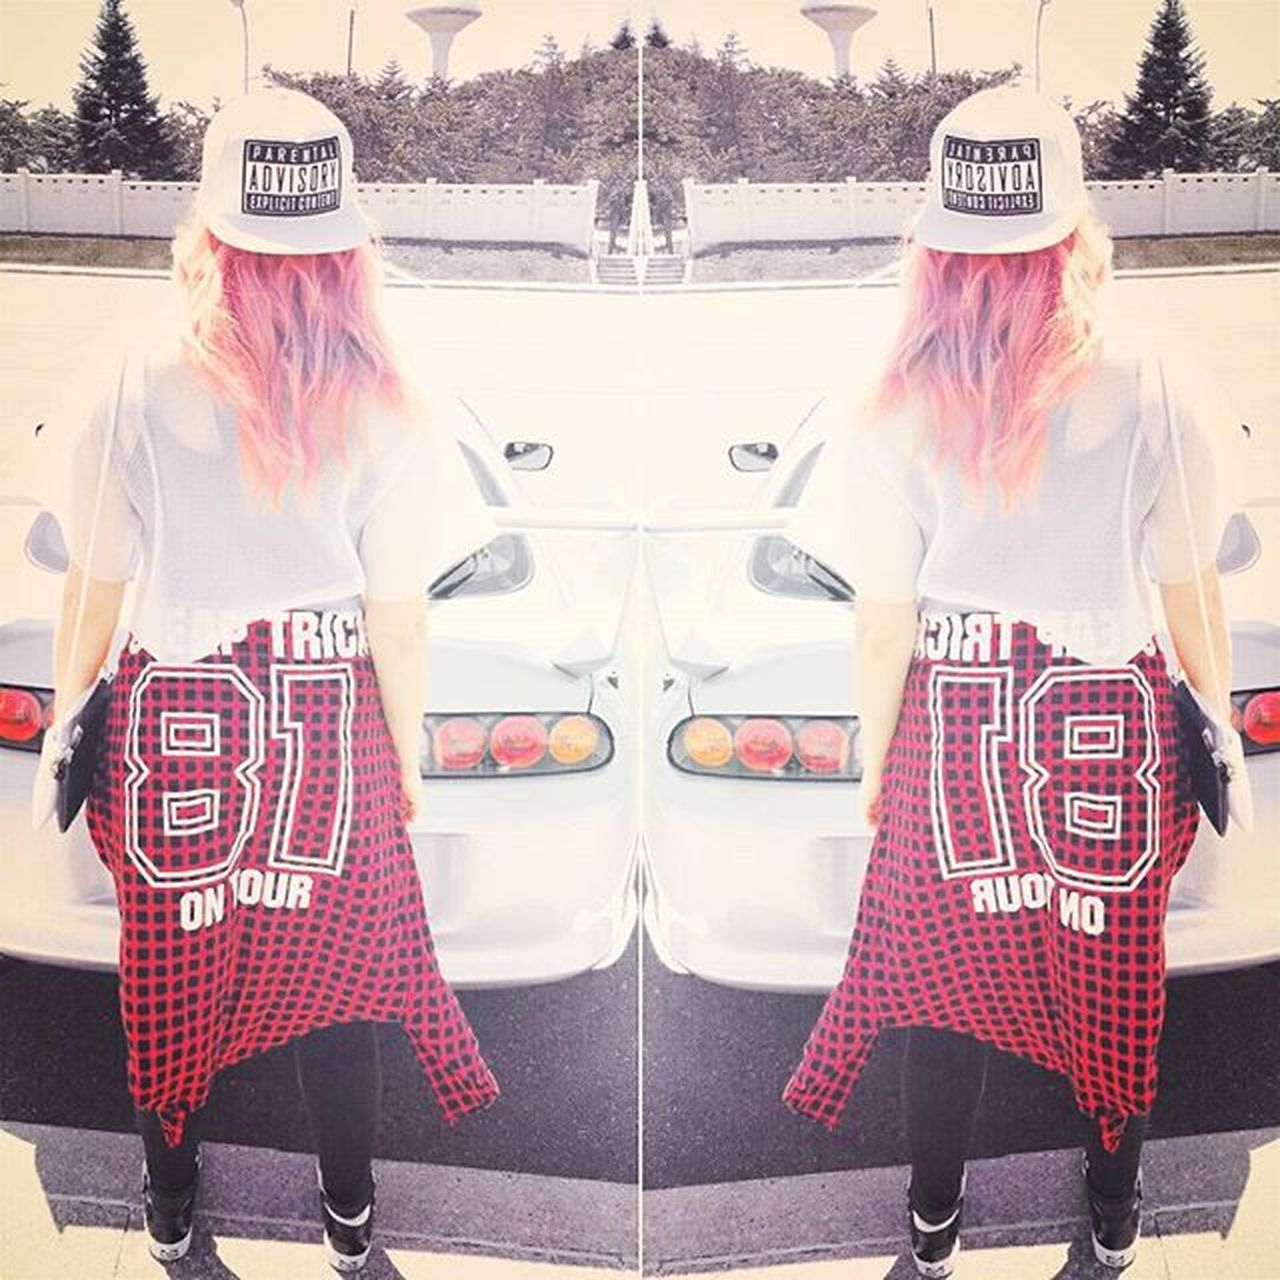 Never looking back 👓👣💭 Japan TBT  Ootd Style Lookbook POTD Ukrainiangirl Ukrainki Pinkhair Hairporn Hairinspiration Wanderlust Supra Supranation 2jz